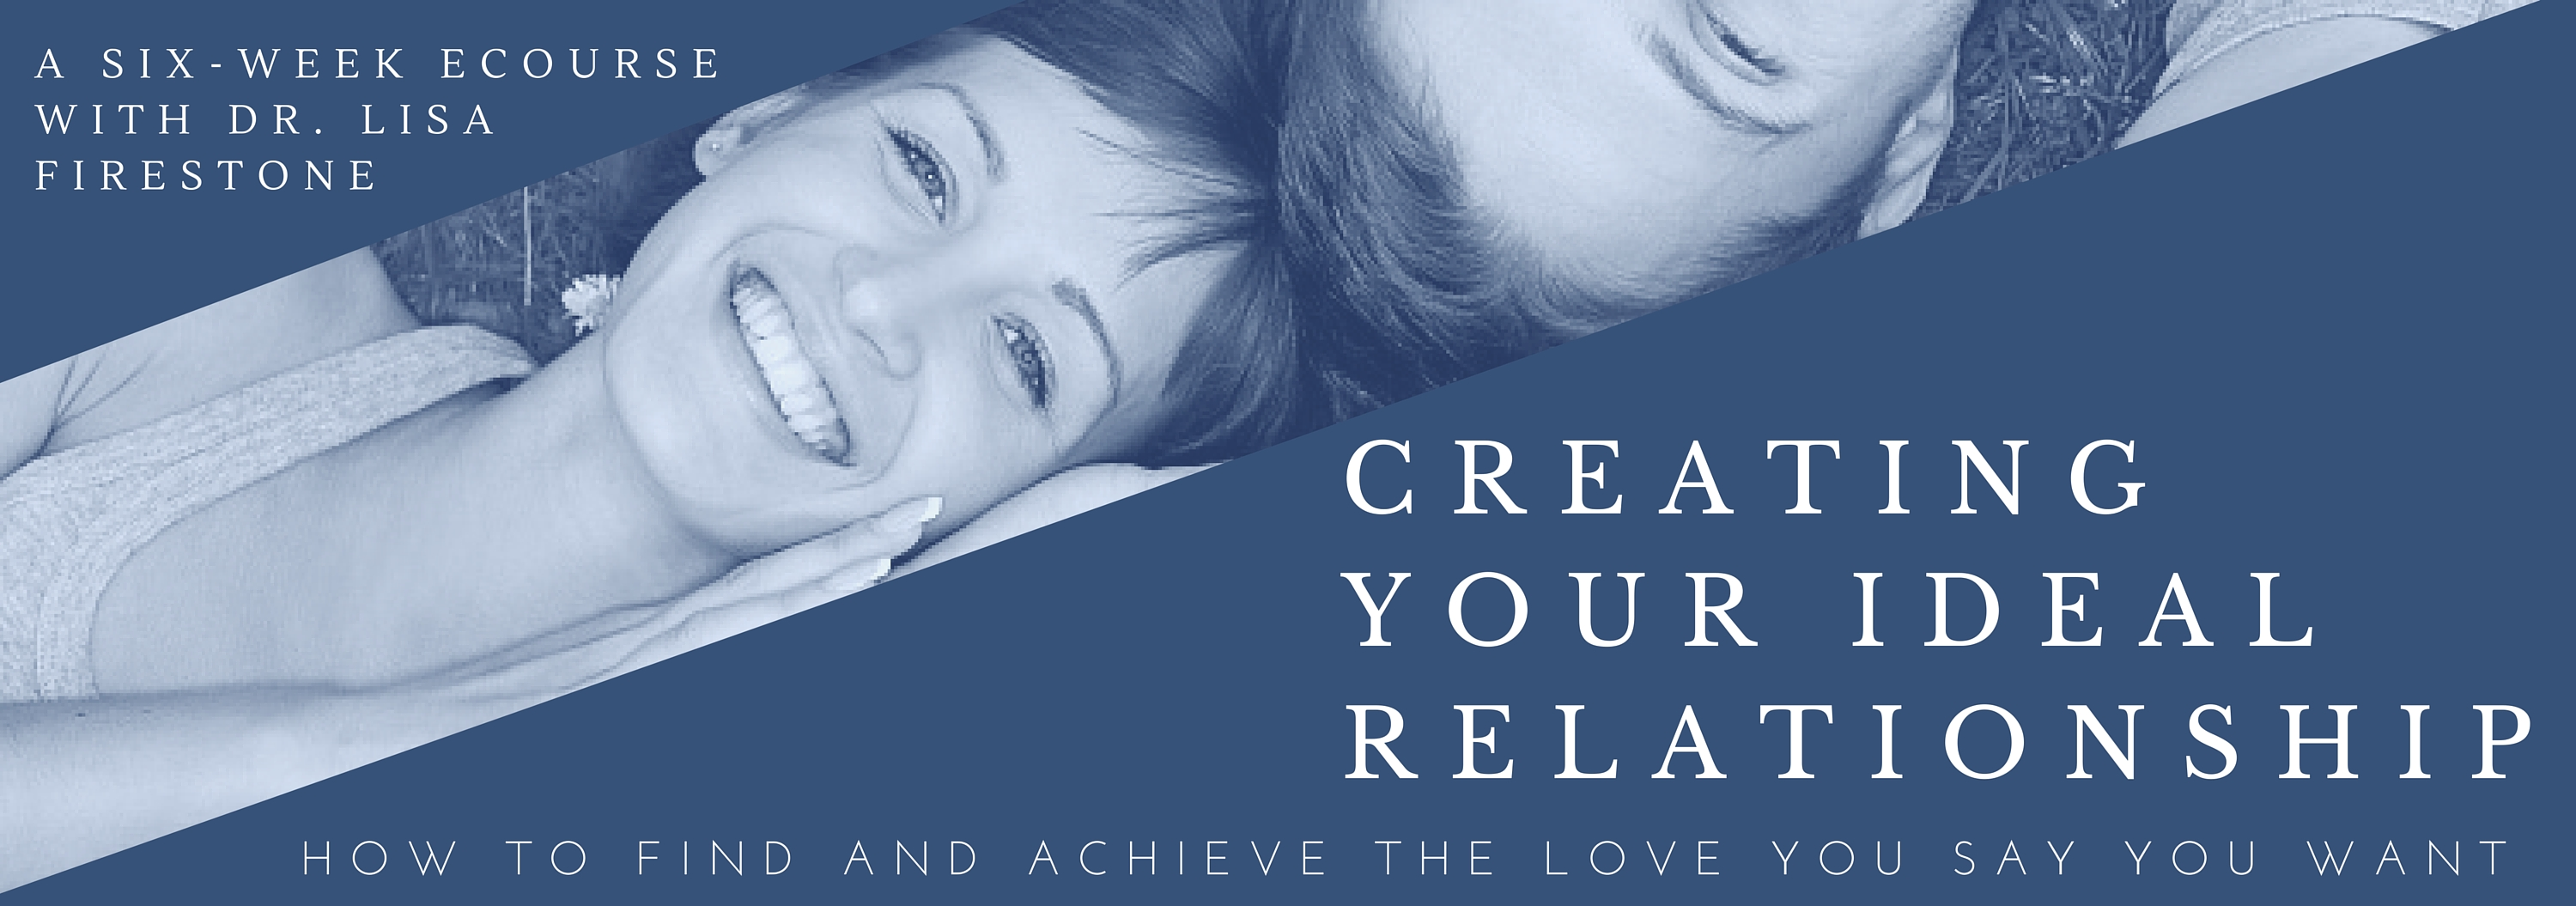 creating your ideal relationship ecourse